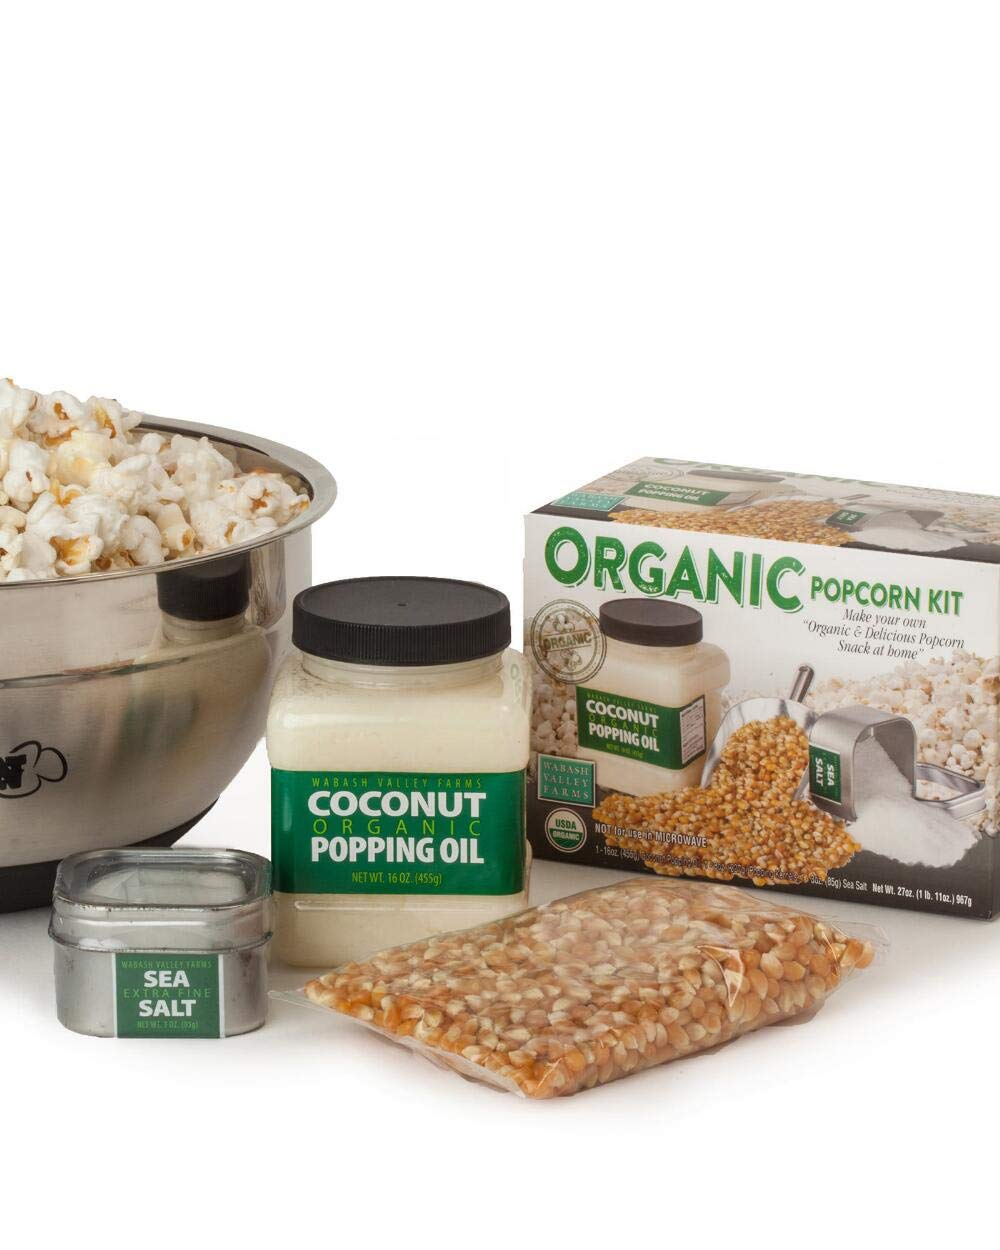 Organic Popping Set and Stainless Steel Bowl! Serving Bowl, Organic Coconut Oil, Organic Yellow Kernels And Fine Sea Salt! Non-Gmo, Gluten Free & 100% Whole Grain! Tasty Delicious Healthy Snack!